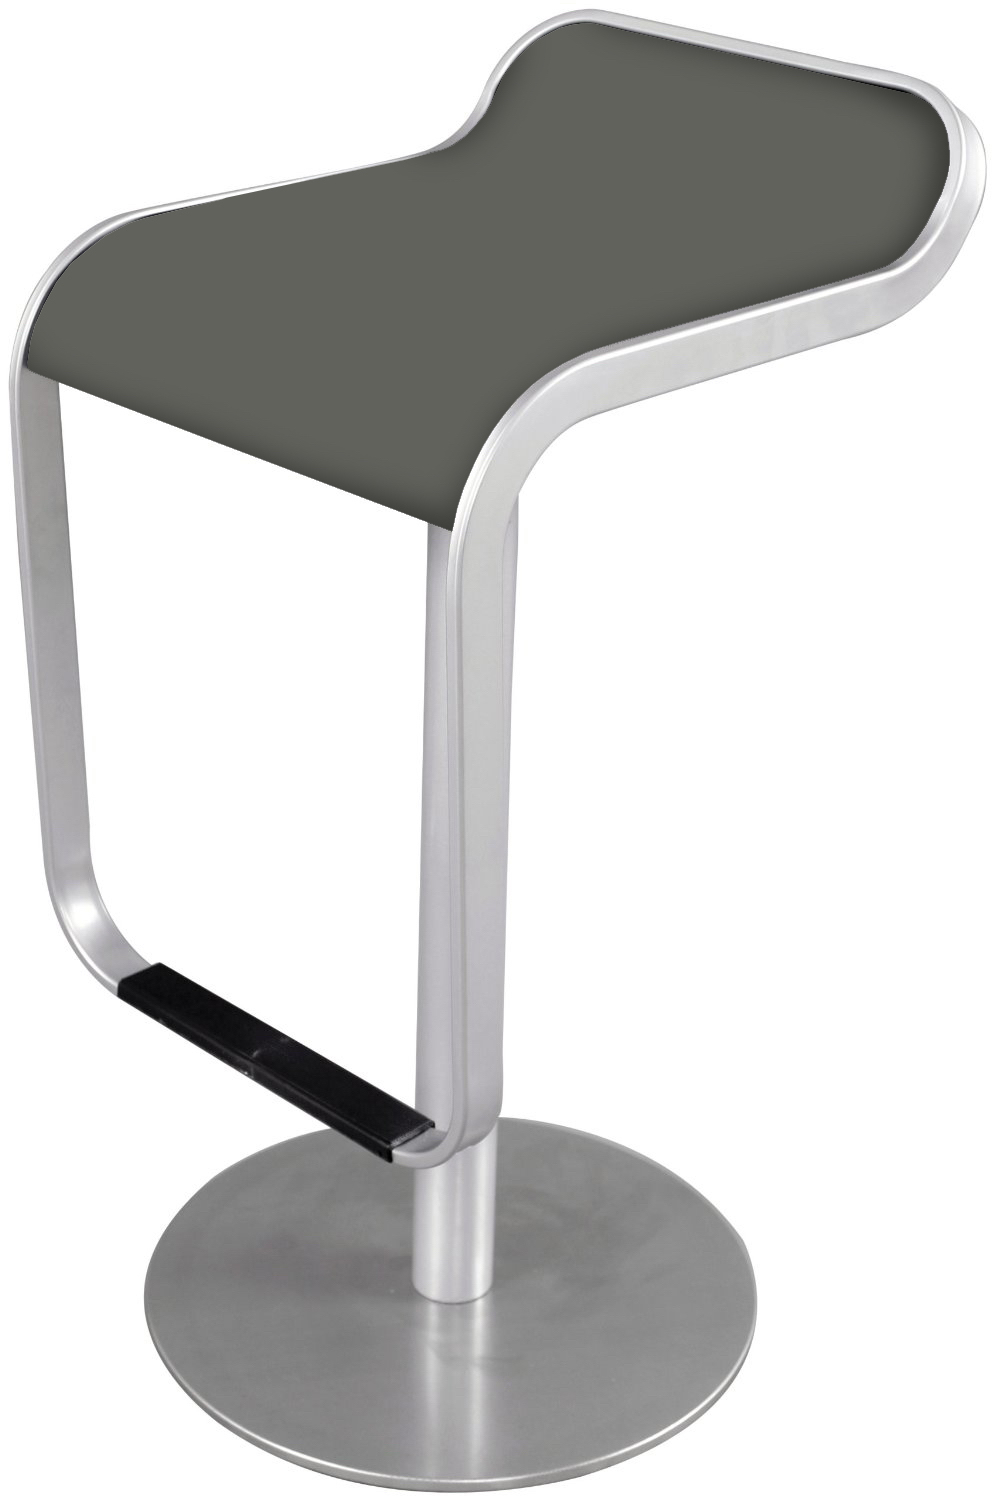 lem-stool-in-gray.jpg